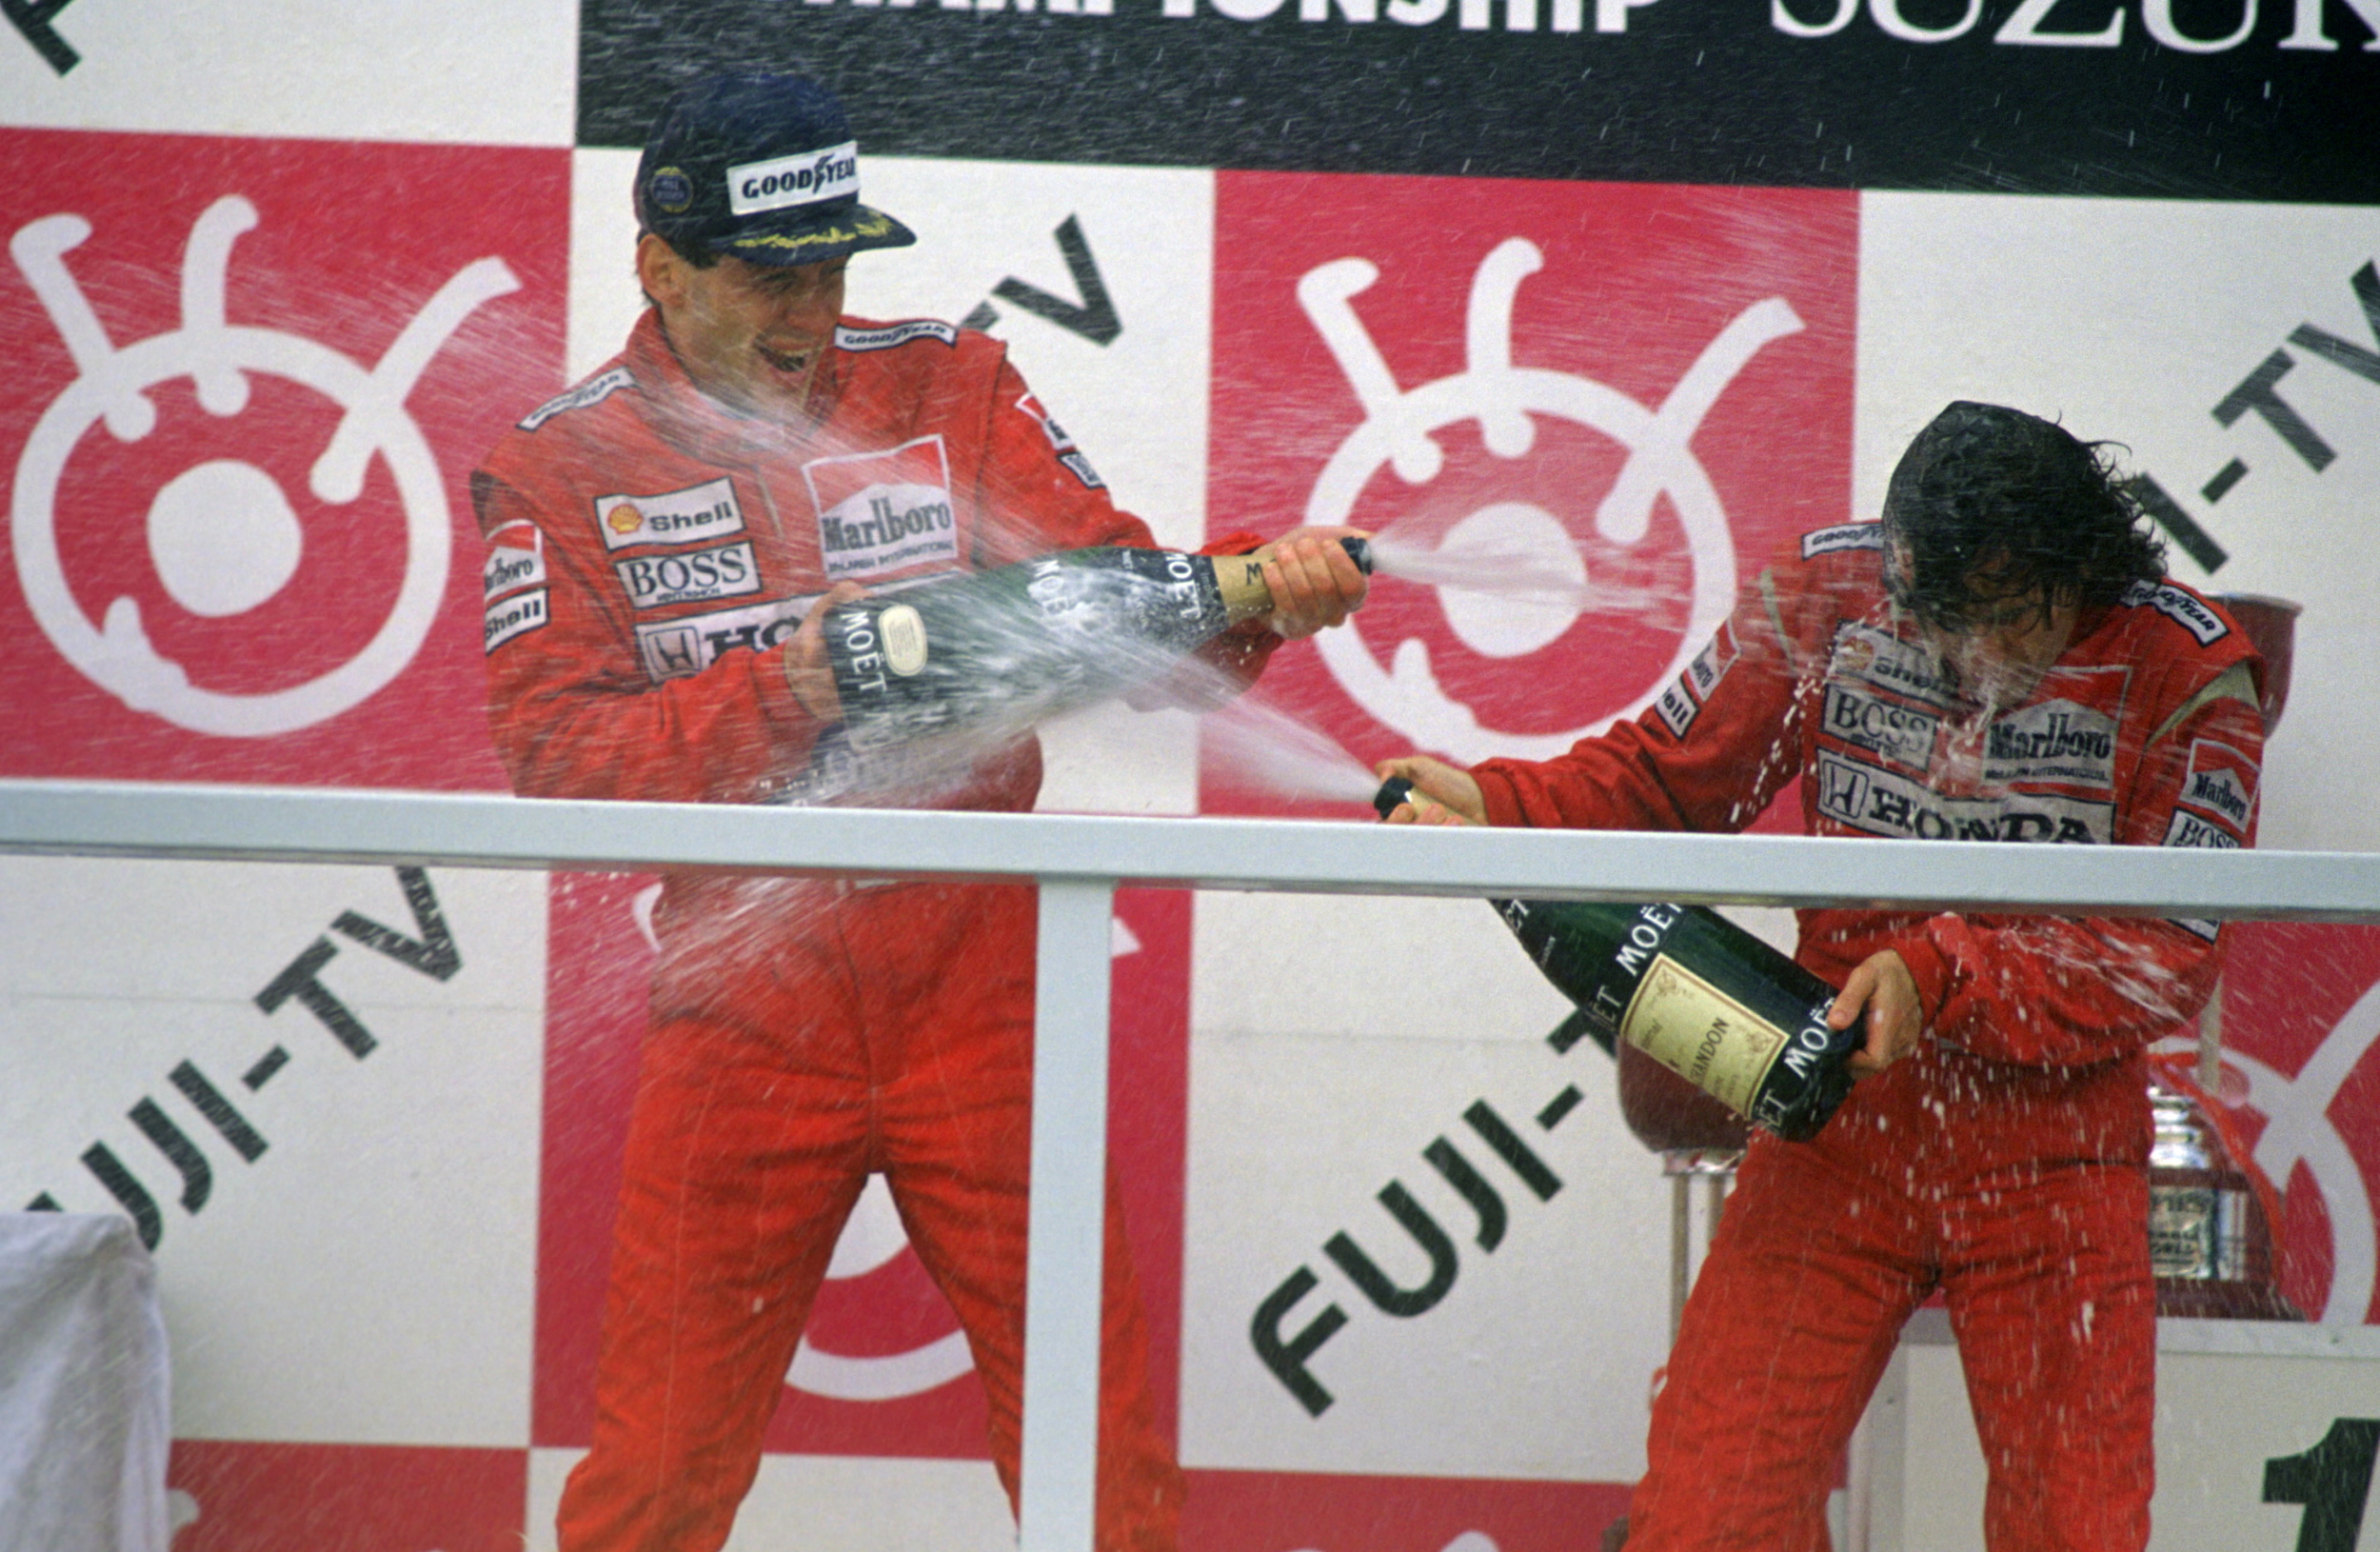 Ayrton Senna (l) celebrates winning the 1988 Formula 1 World Championship, after securing vicory at the Japanese Grand Prix, by spraying his McLaren team mate, Alain Prost (r) with champagne. The two would go on to forge a rivalry that has passed on into F1 folklore. Image supplied by Action Images /Crispin Thruston.